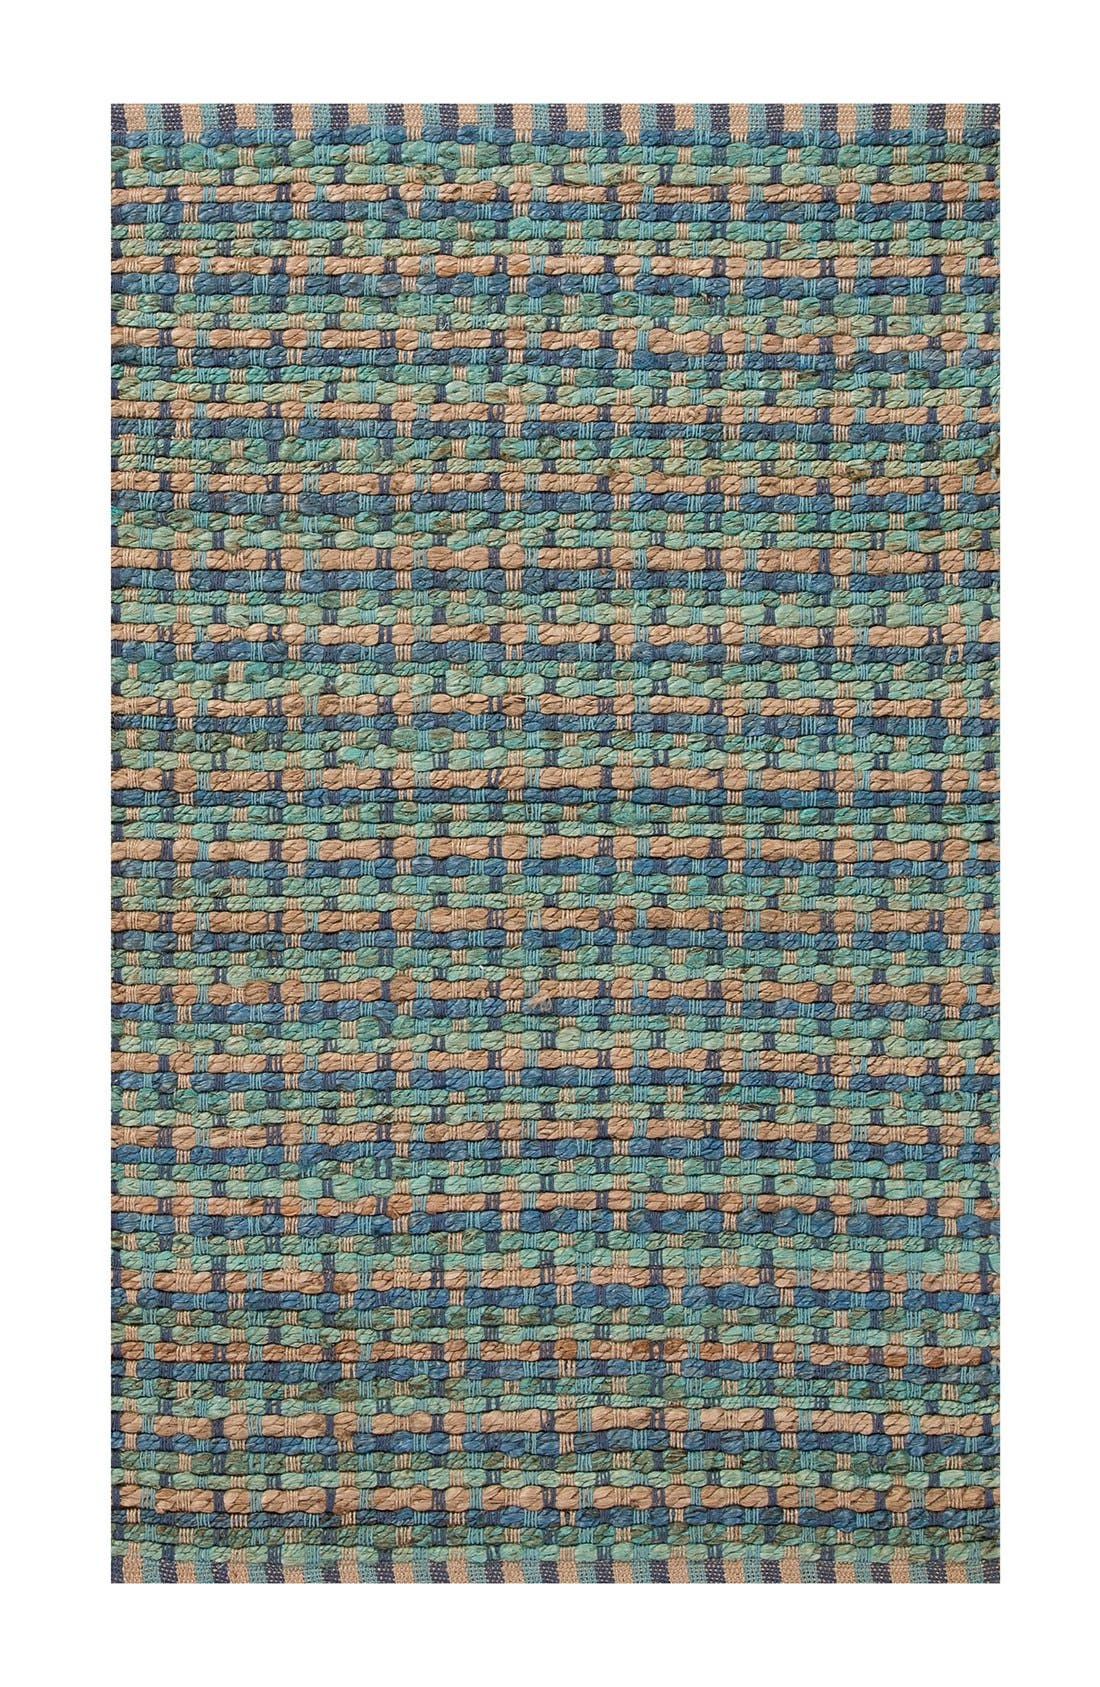 Alternate Image 1 Selected - Jaipur 'Manchester' Jute & Cotton Accent Rug